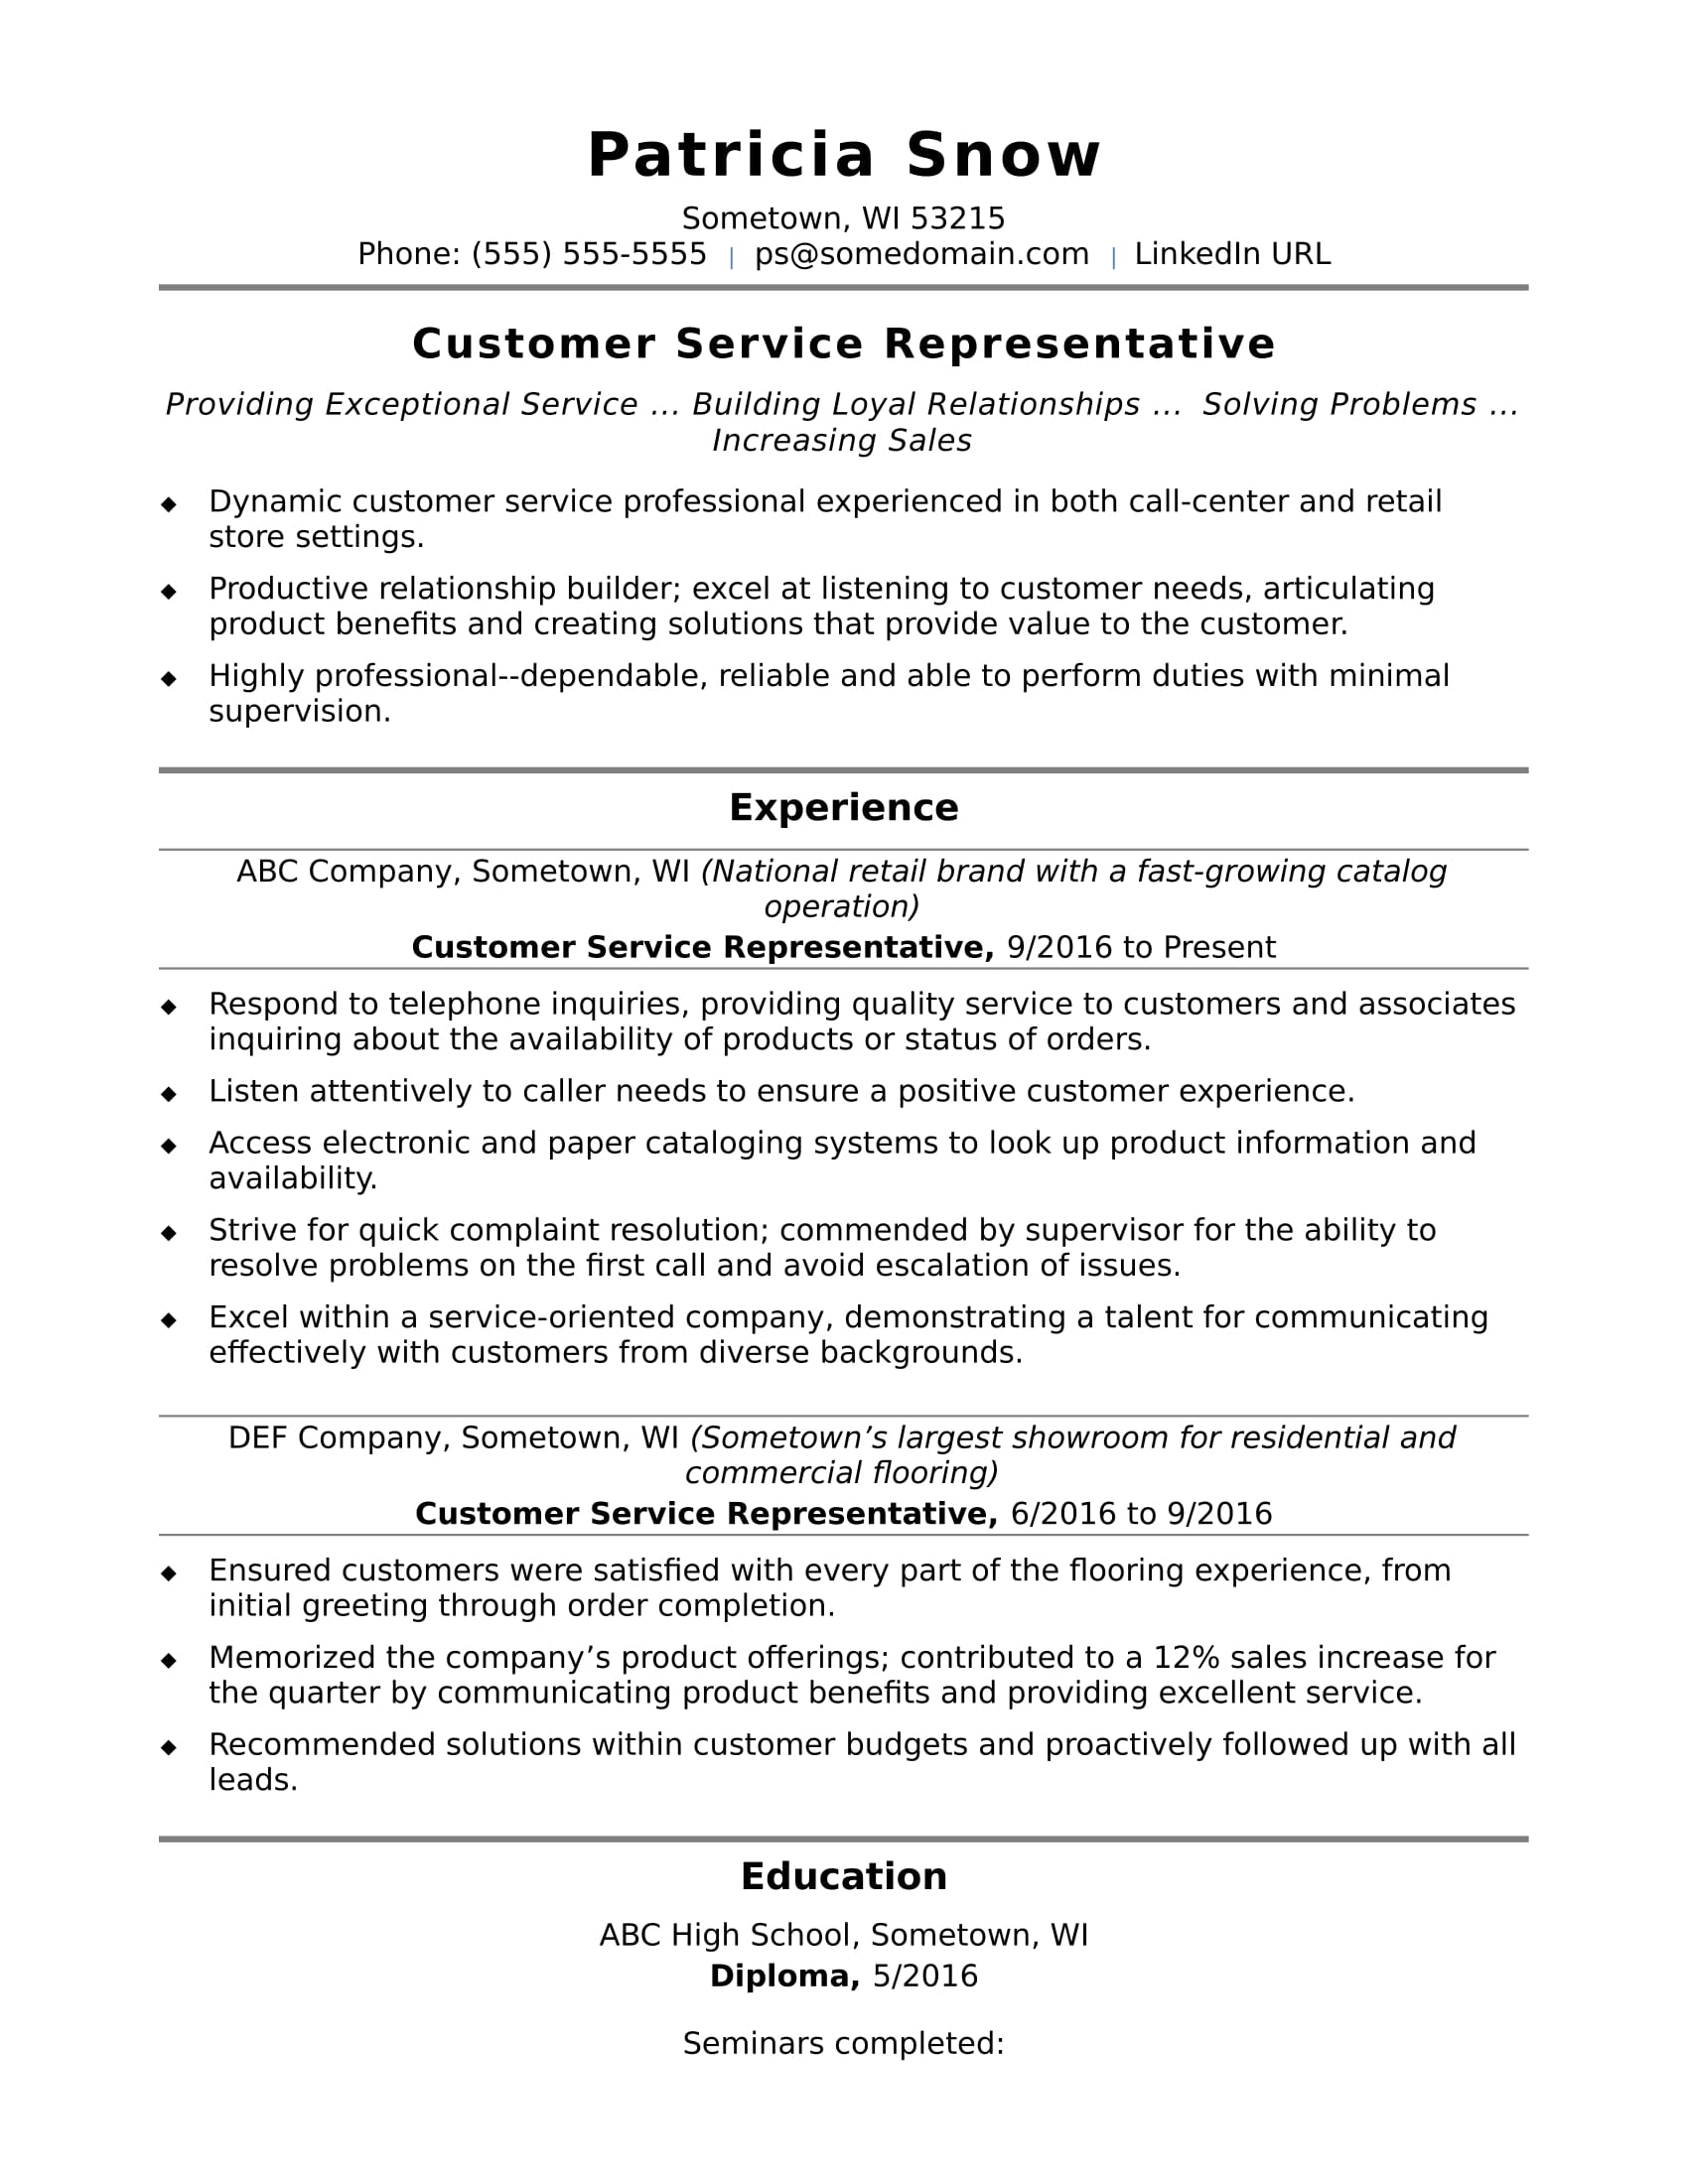 Customer Service Sales Representative Resume Customer Service Representative Resume Sample Monster